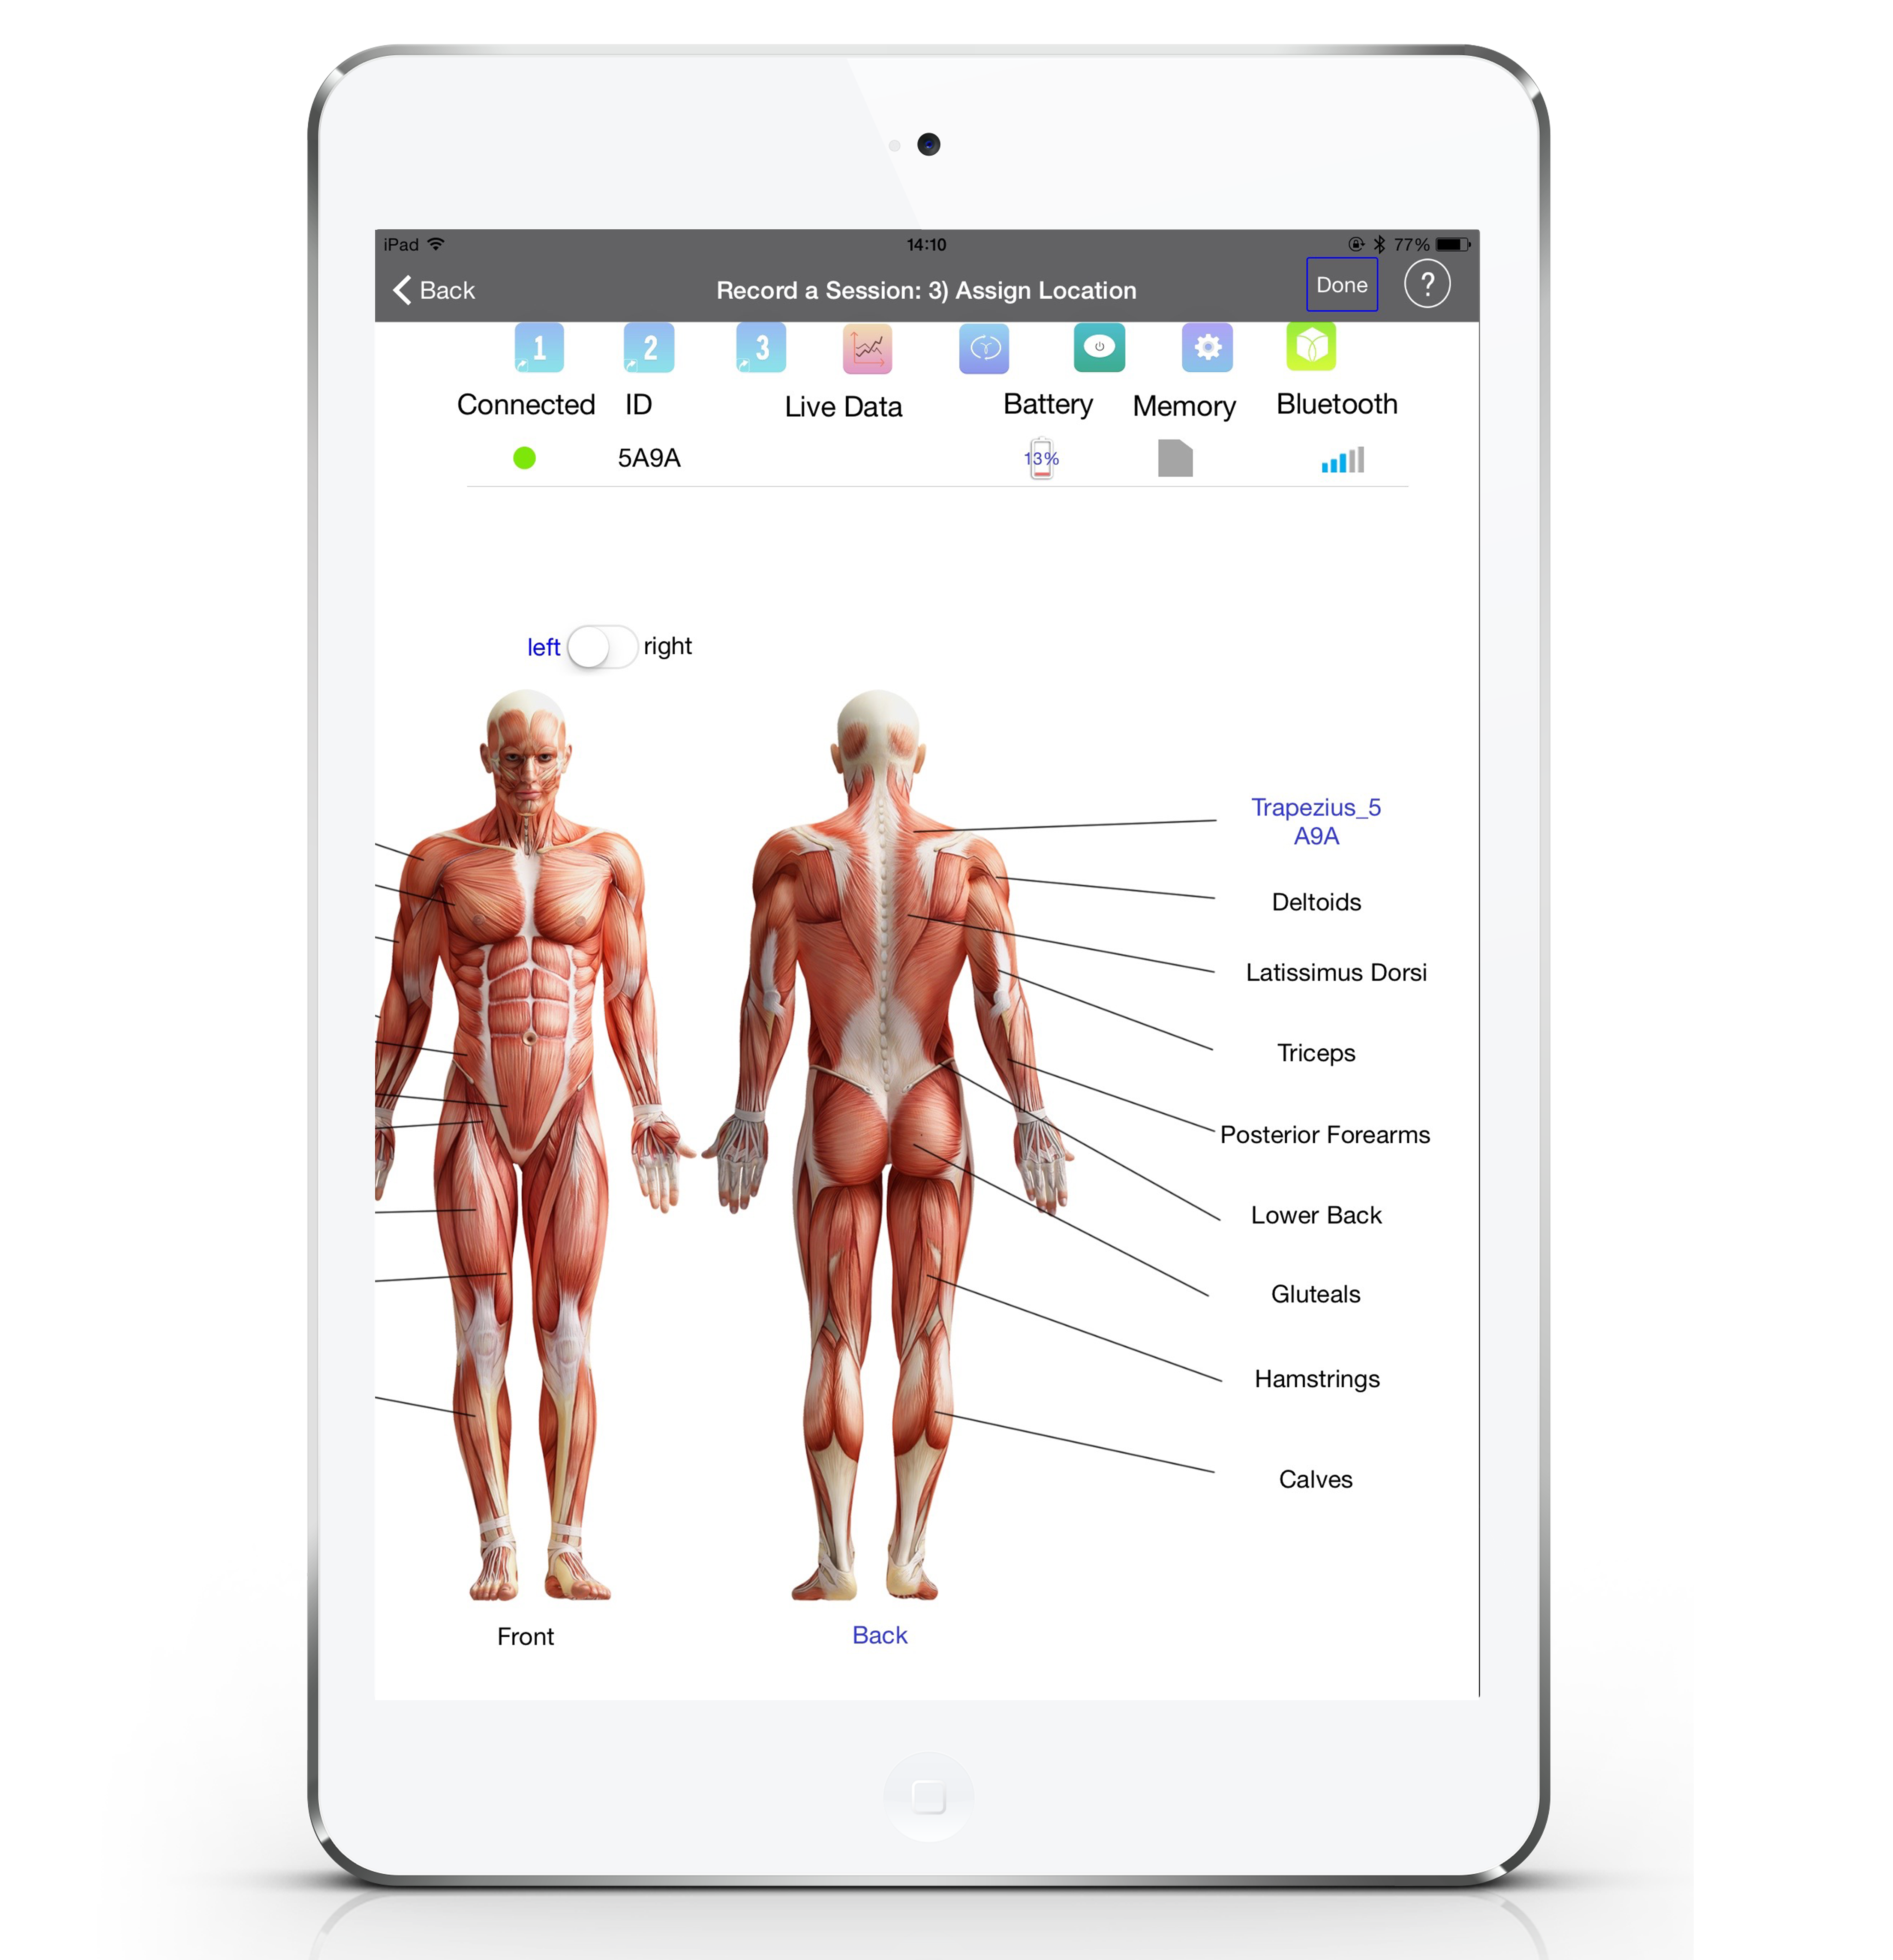 somaxis sensor used to measure muscle energy | innovation essence, Muscles